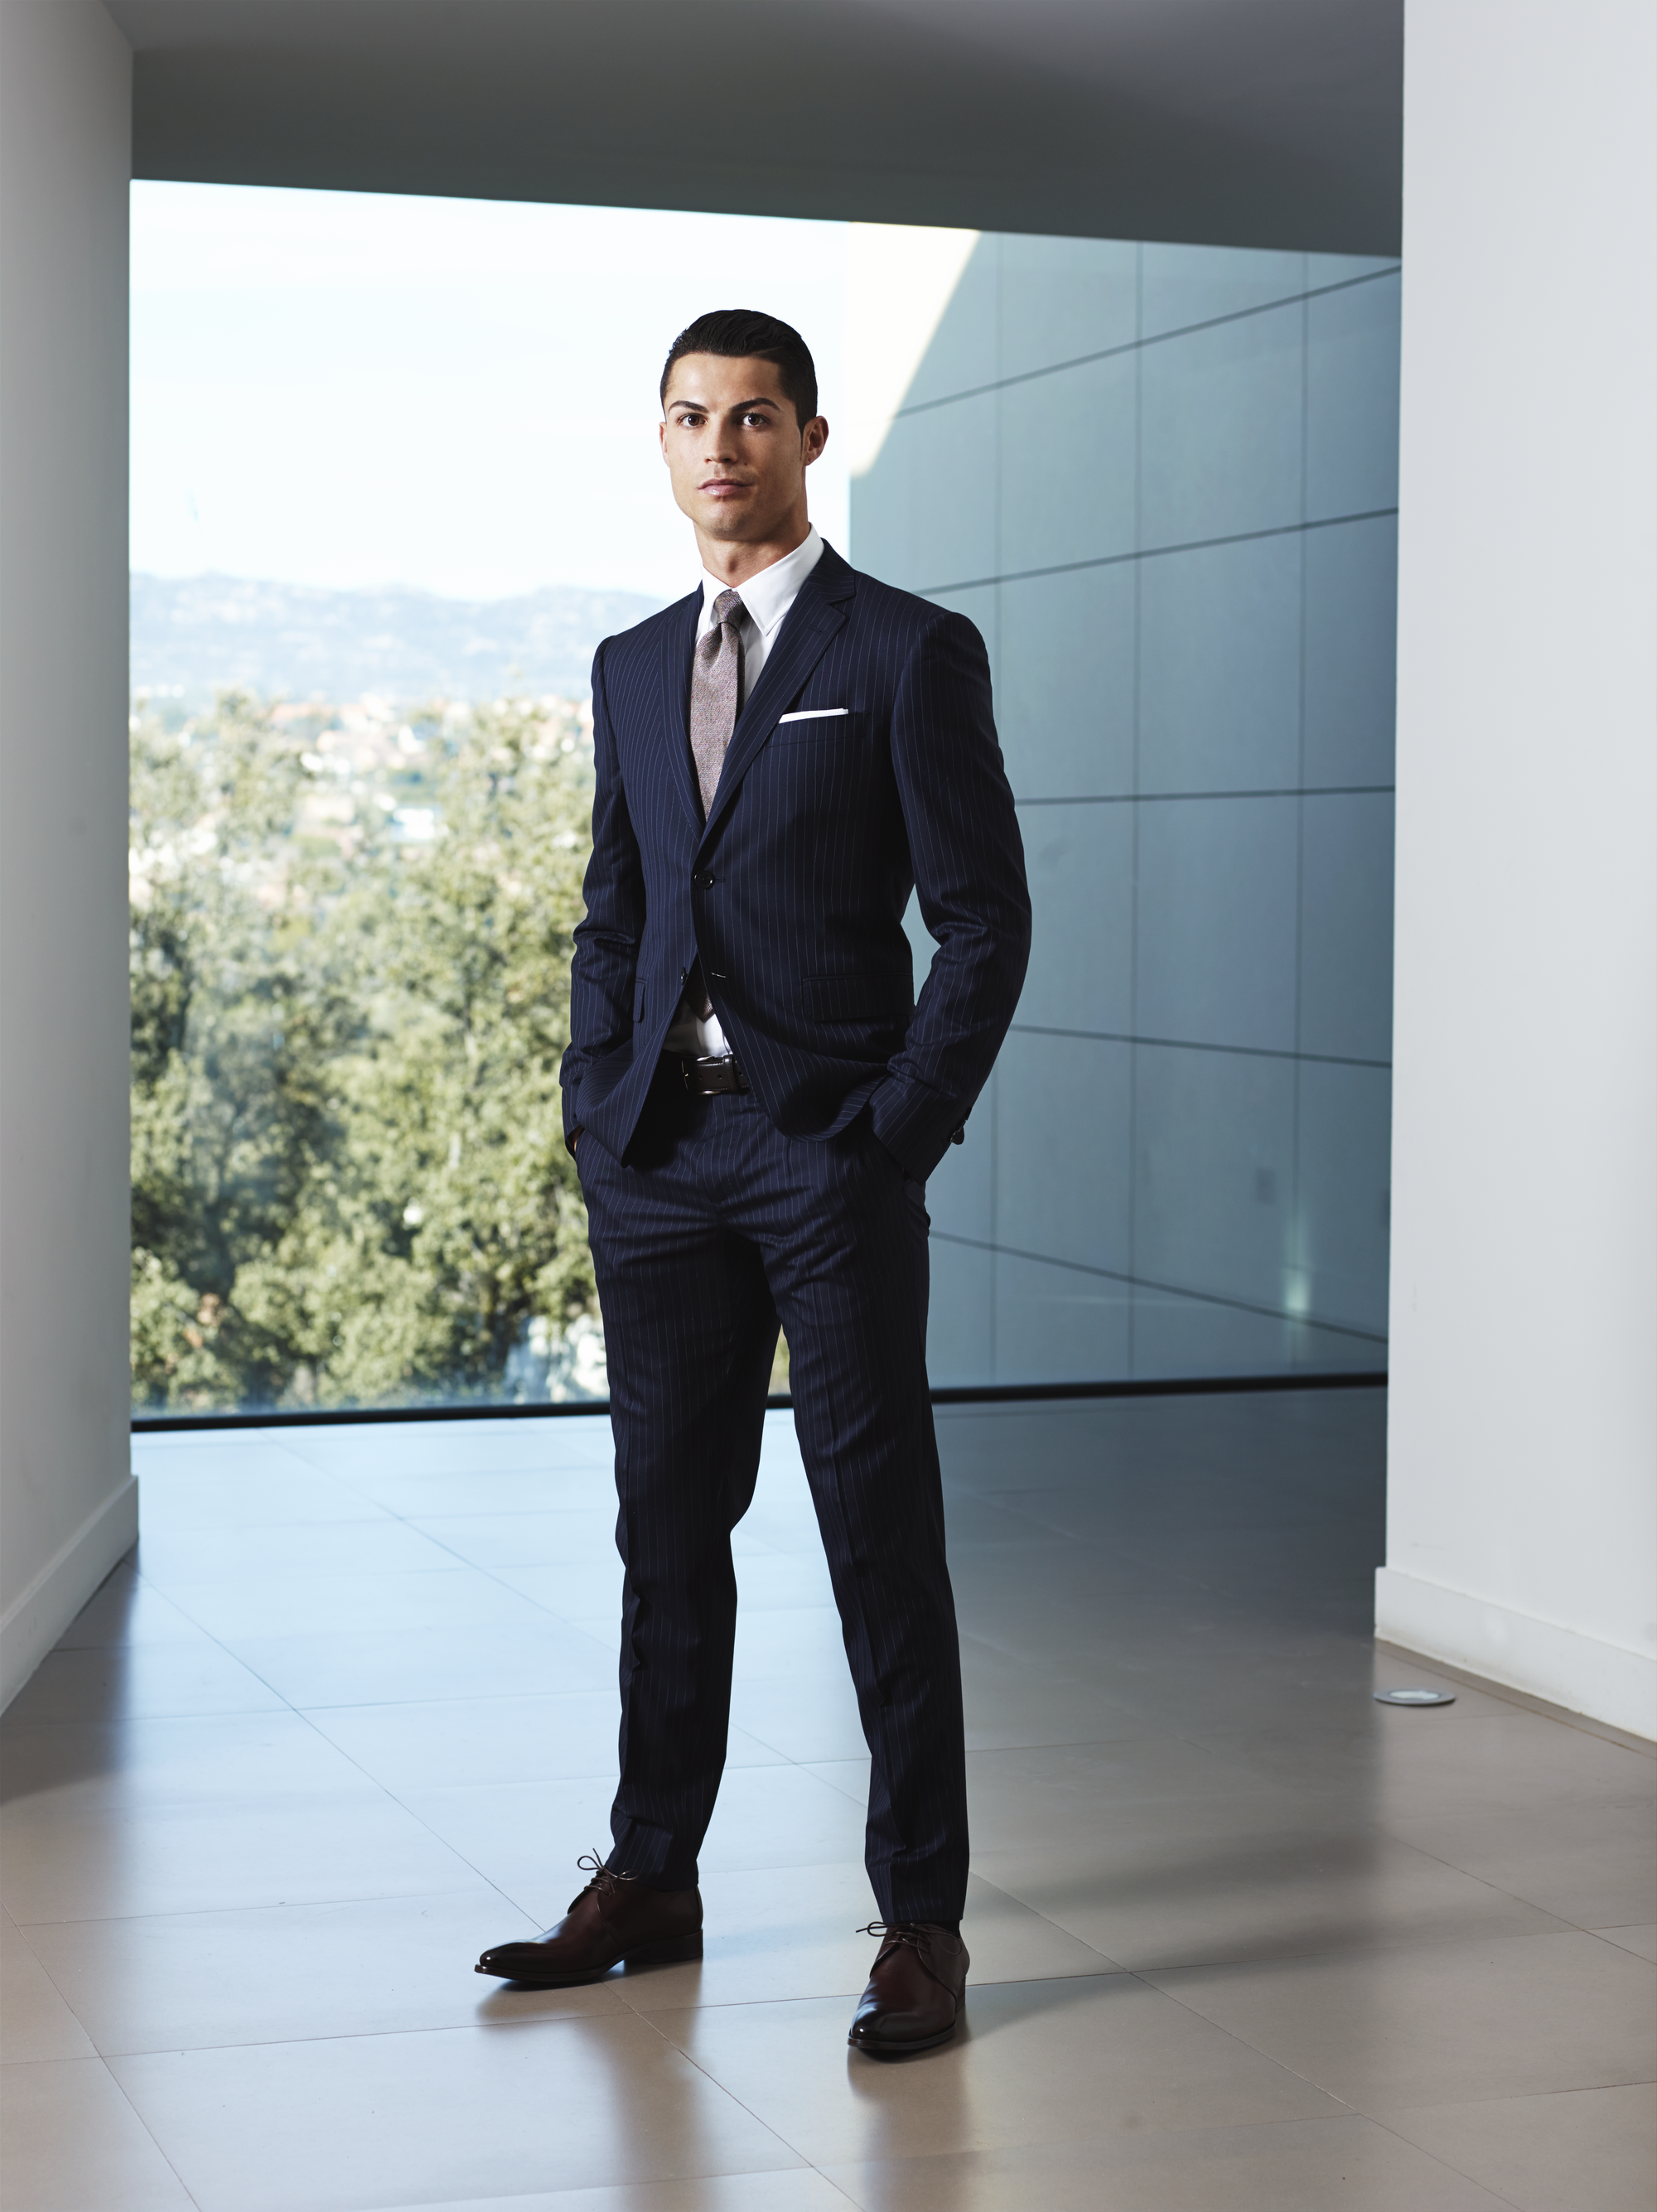 Cristiano Ronaldo in a Sacoor Brothers blue suit | Crstiano ronaldo, Ronaldo,  Cristiano ronaldo cr7